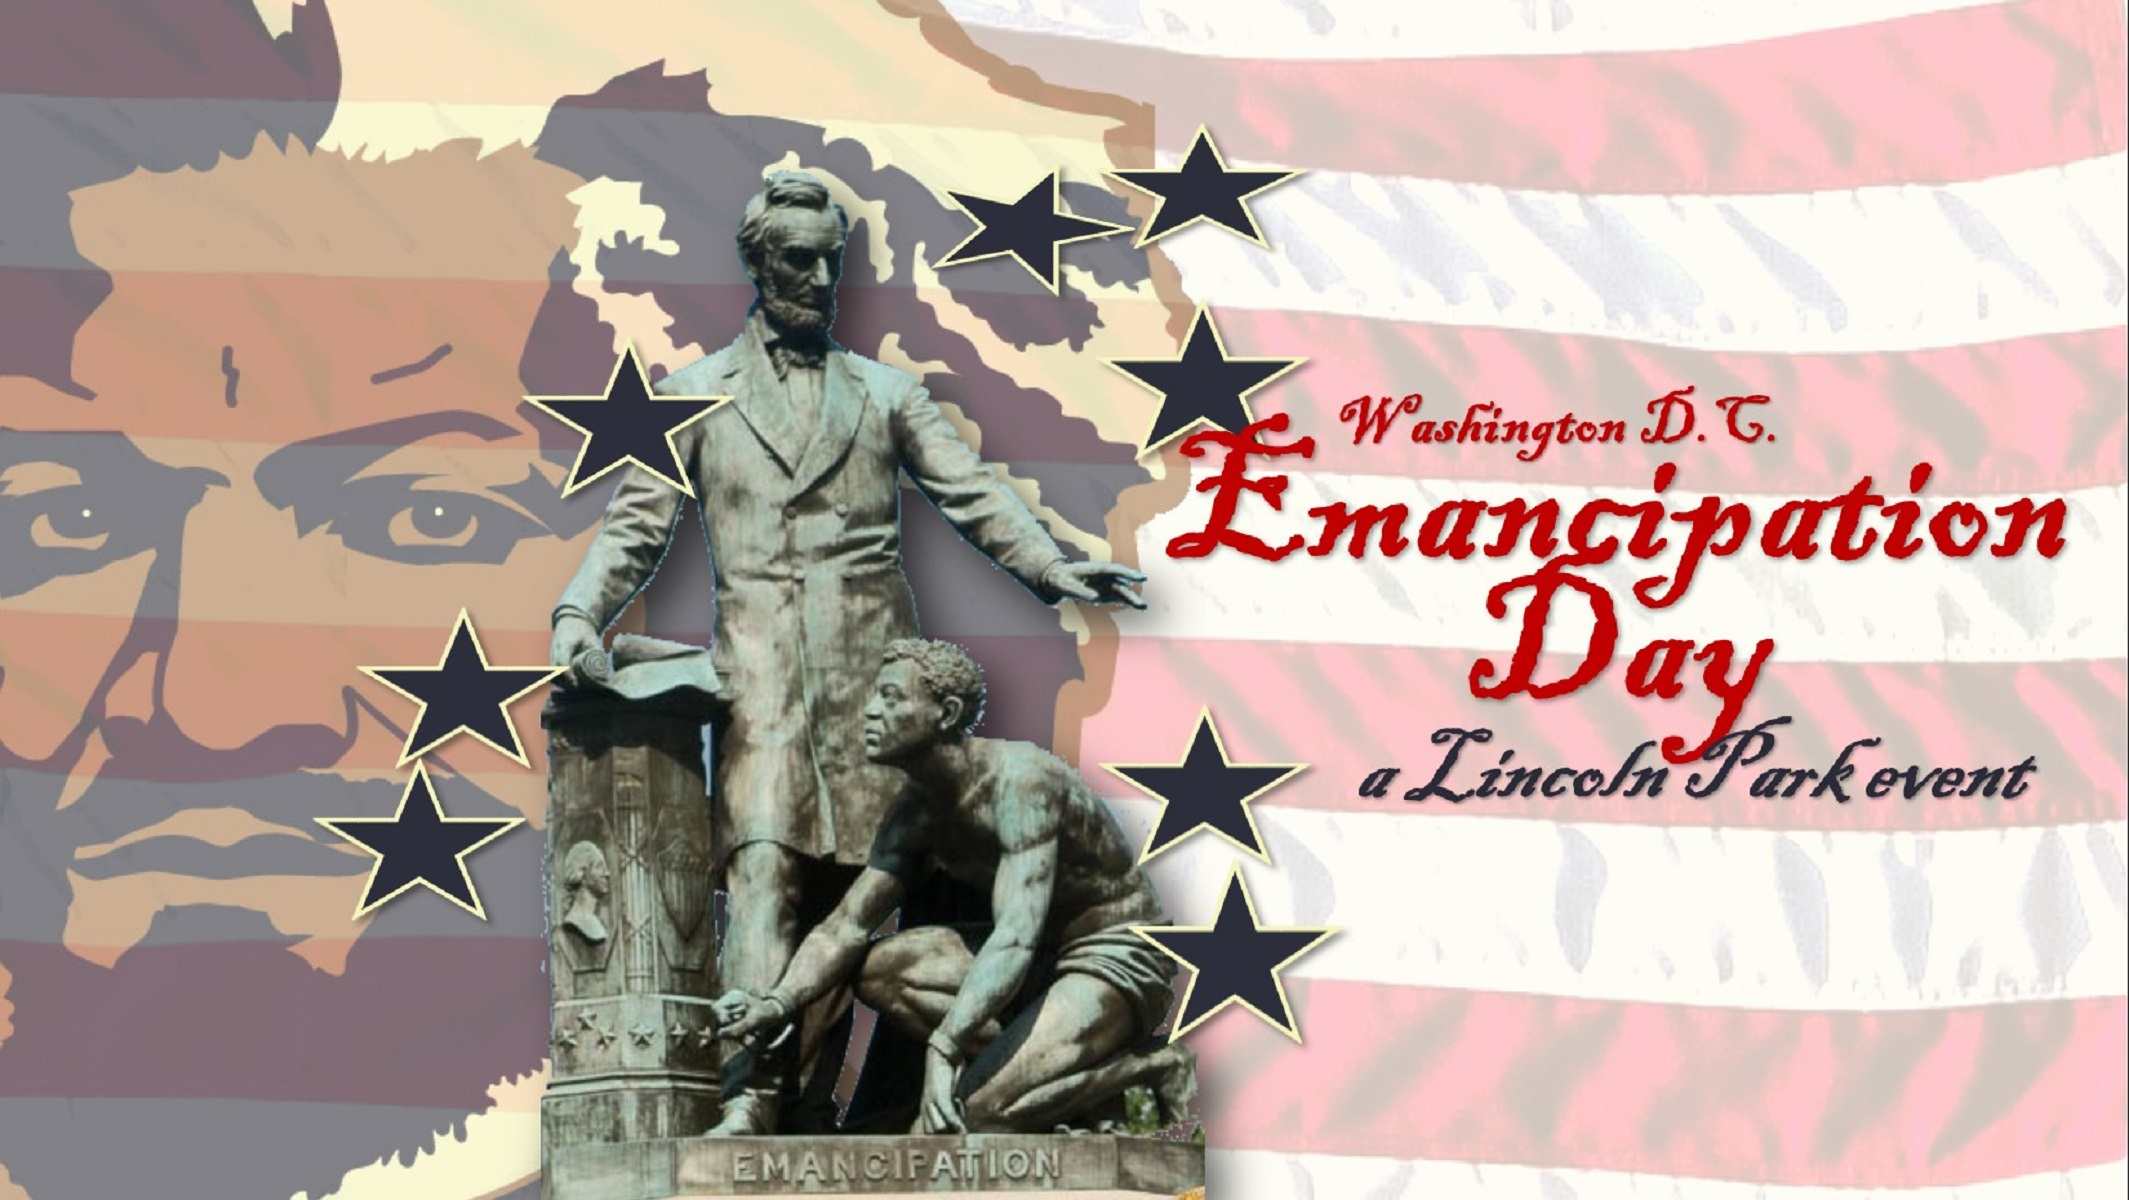 Red, White and Blue Image of Lincoln Statue and Frederick Douglass